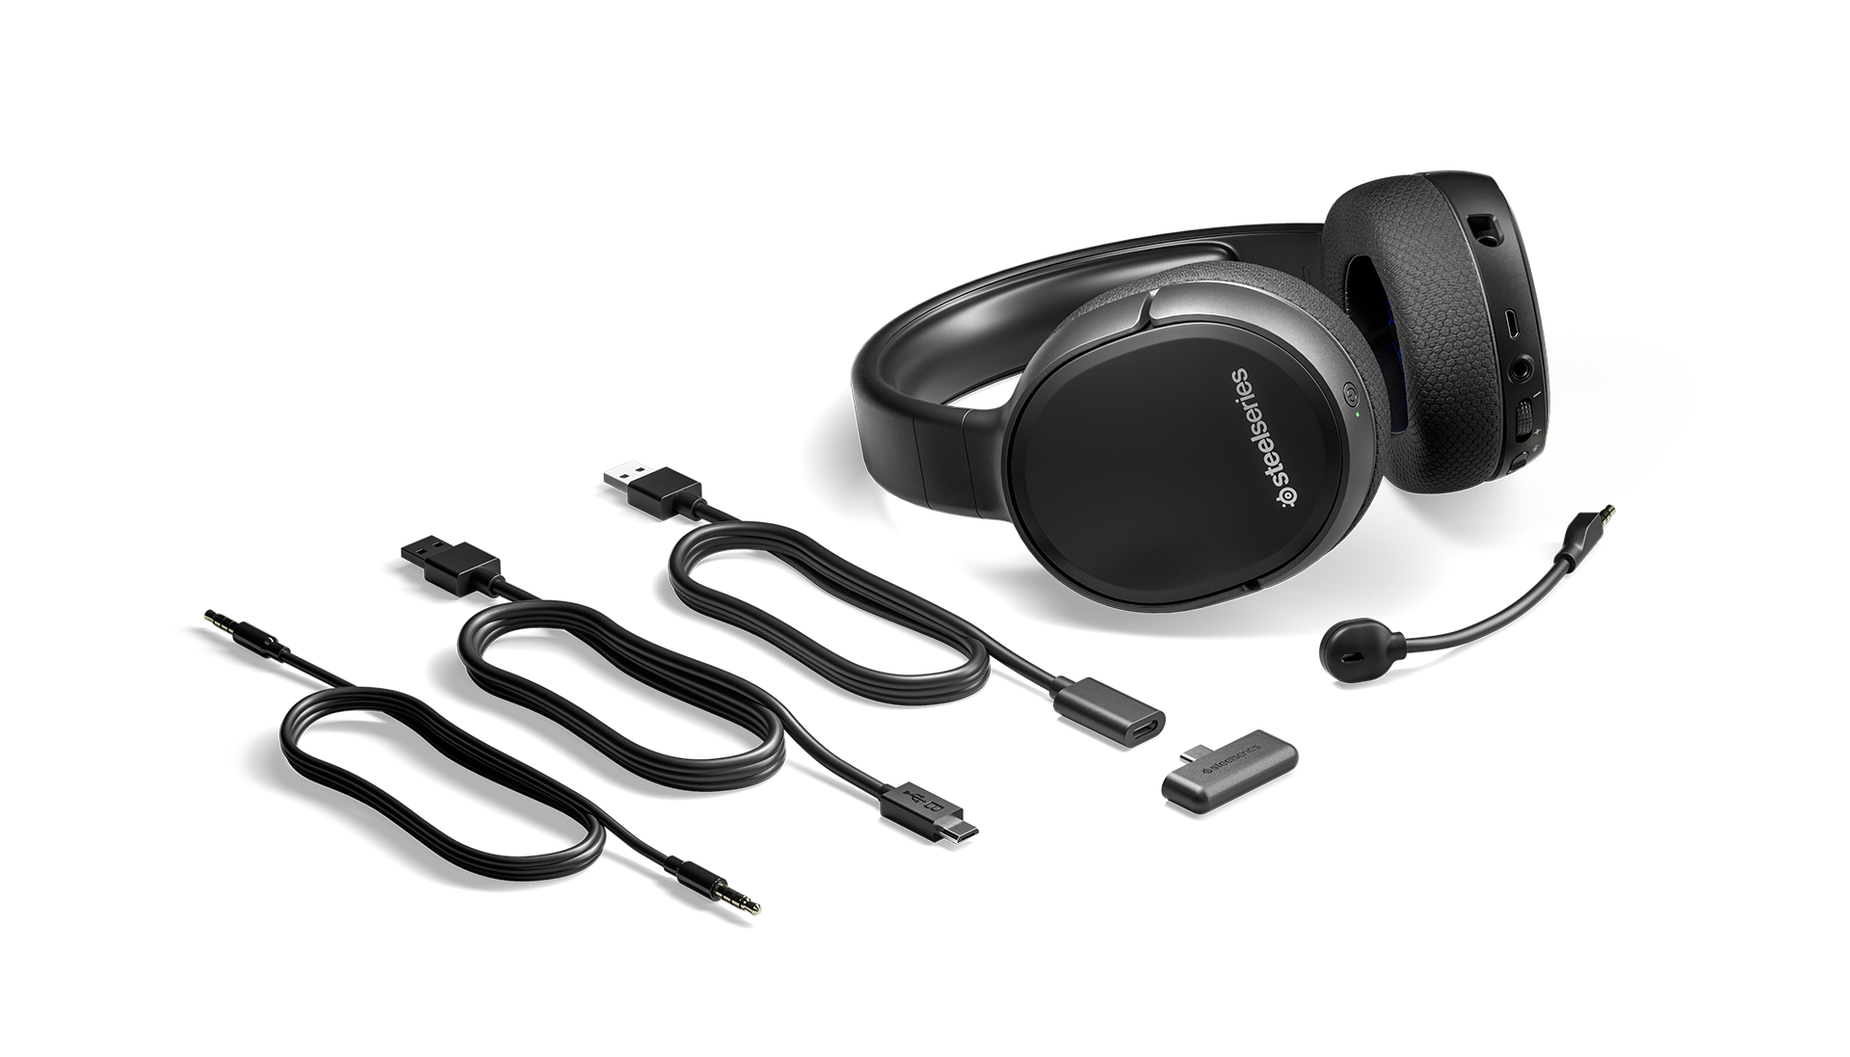 The Arctis 1 Wireless for PS4 gaming headset surrounded by all the box contents including extra cables and the wireless dongle